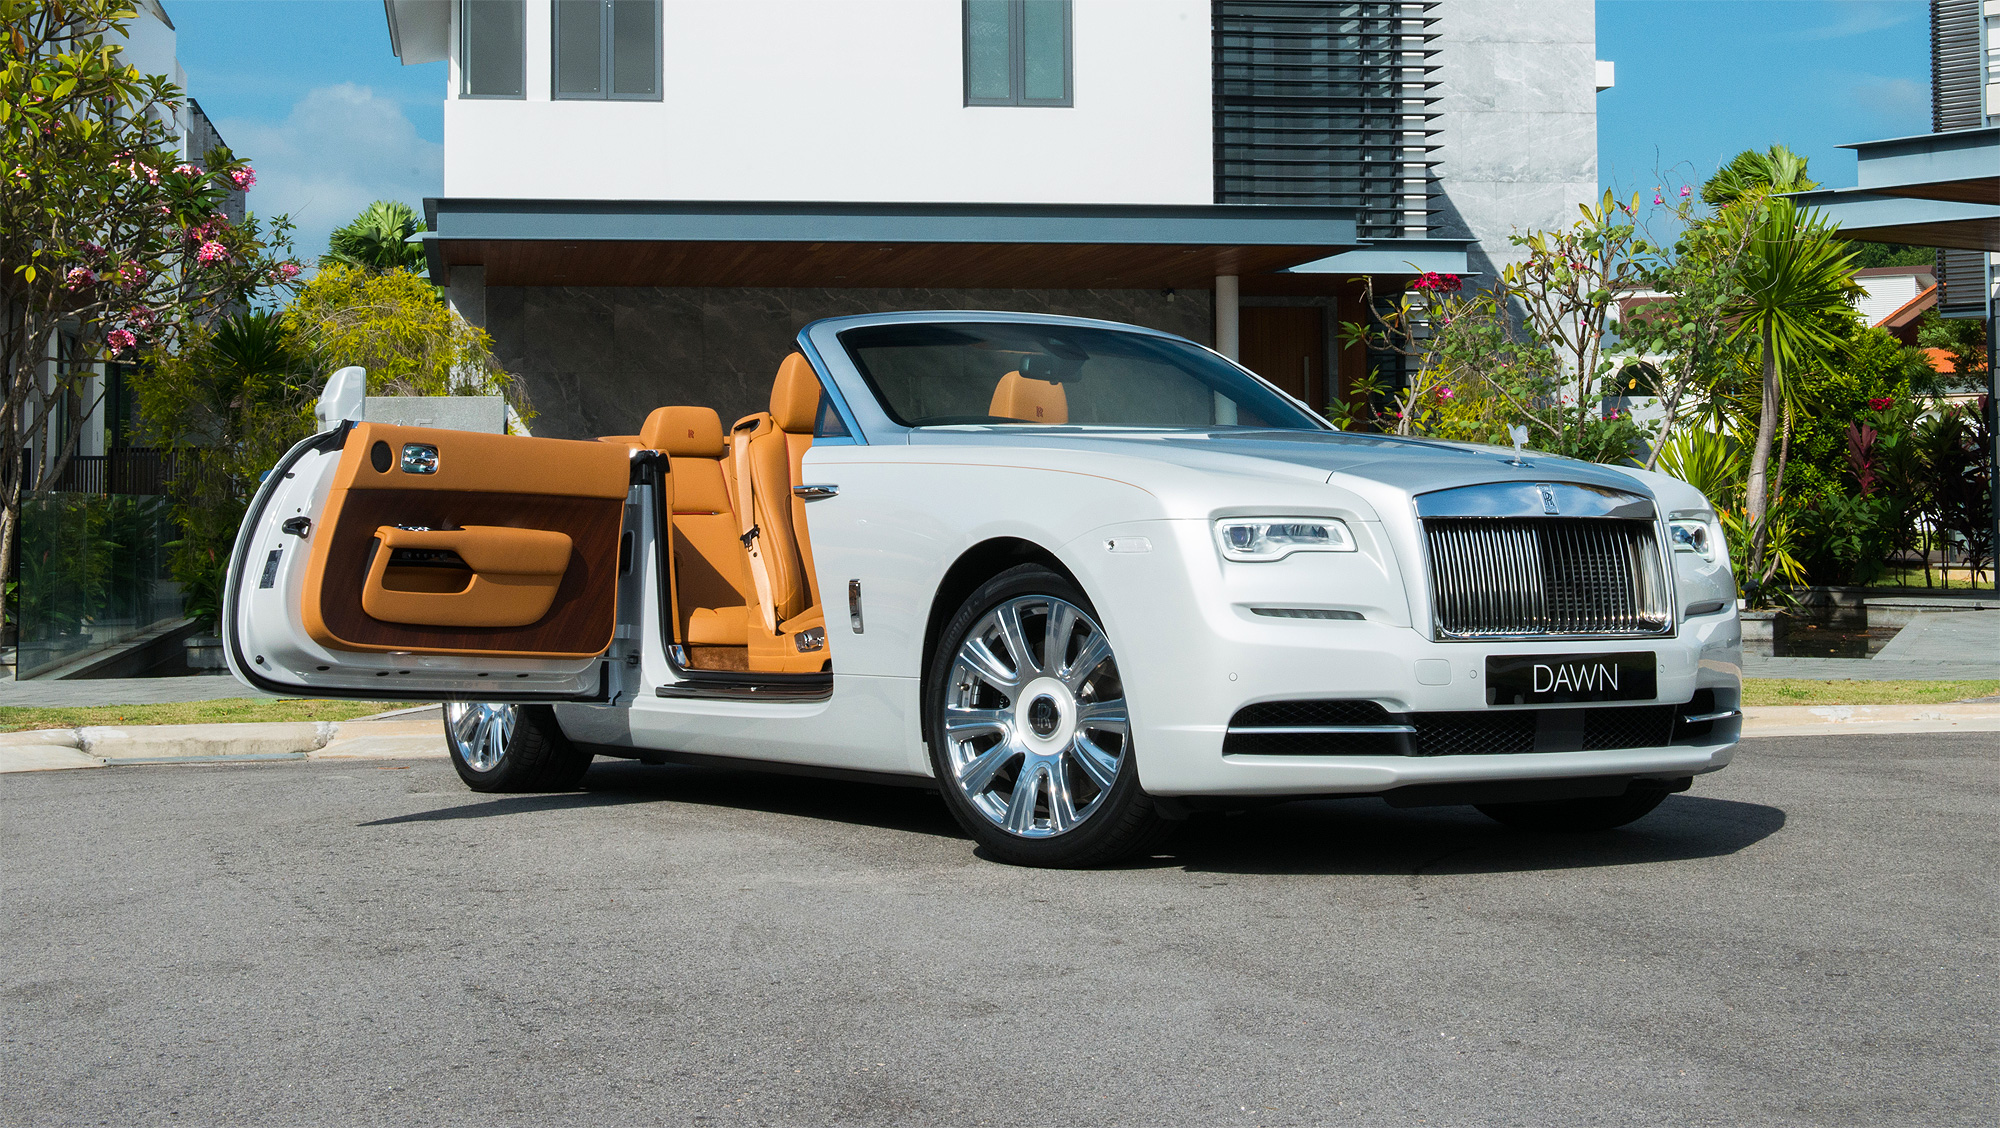 The Rolls-Royce Dawn Casts A Beautiful Glow On Its Debut In South-East Asia